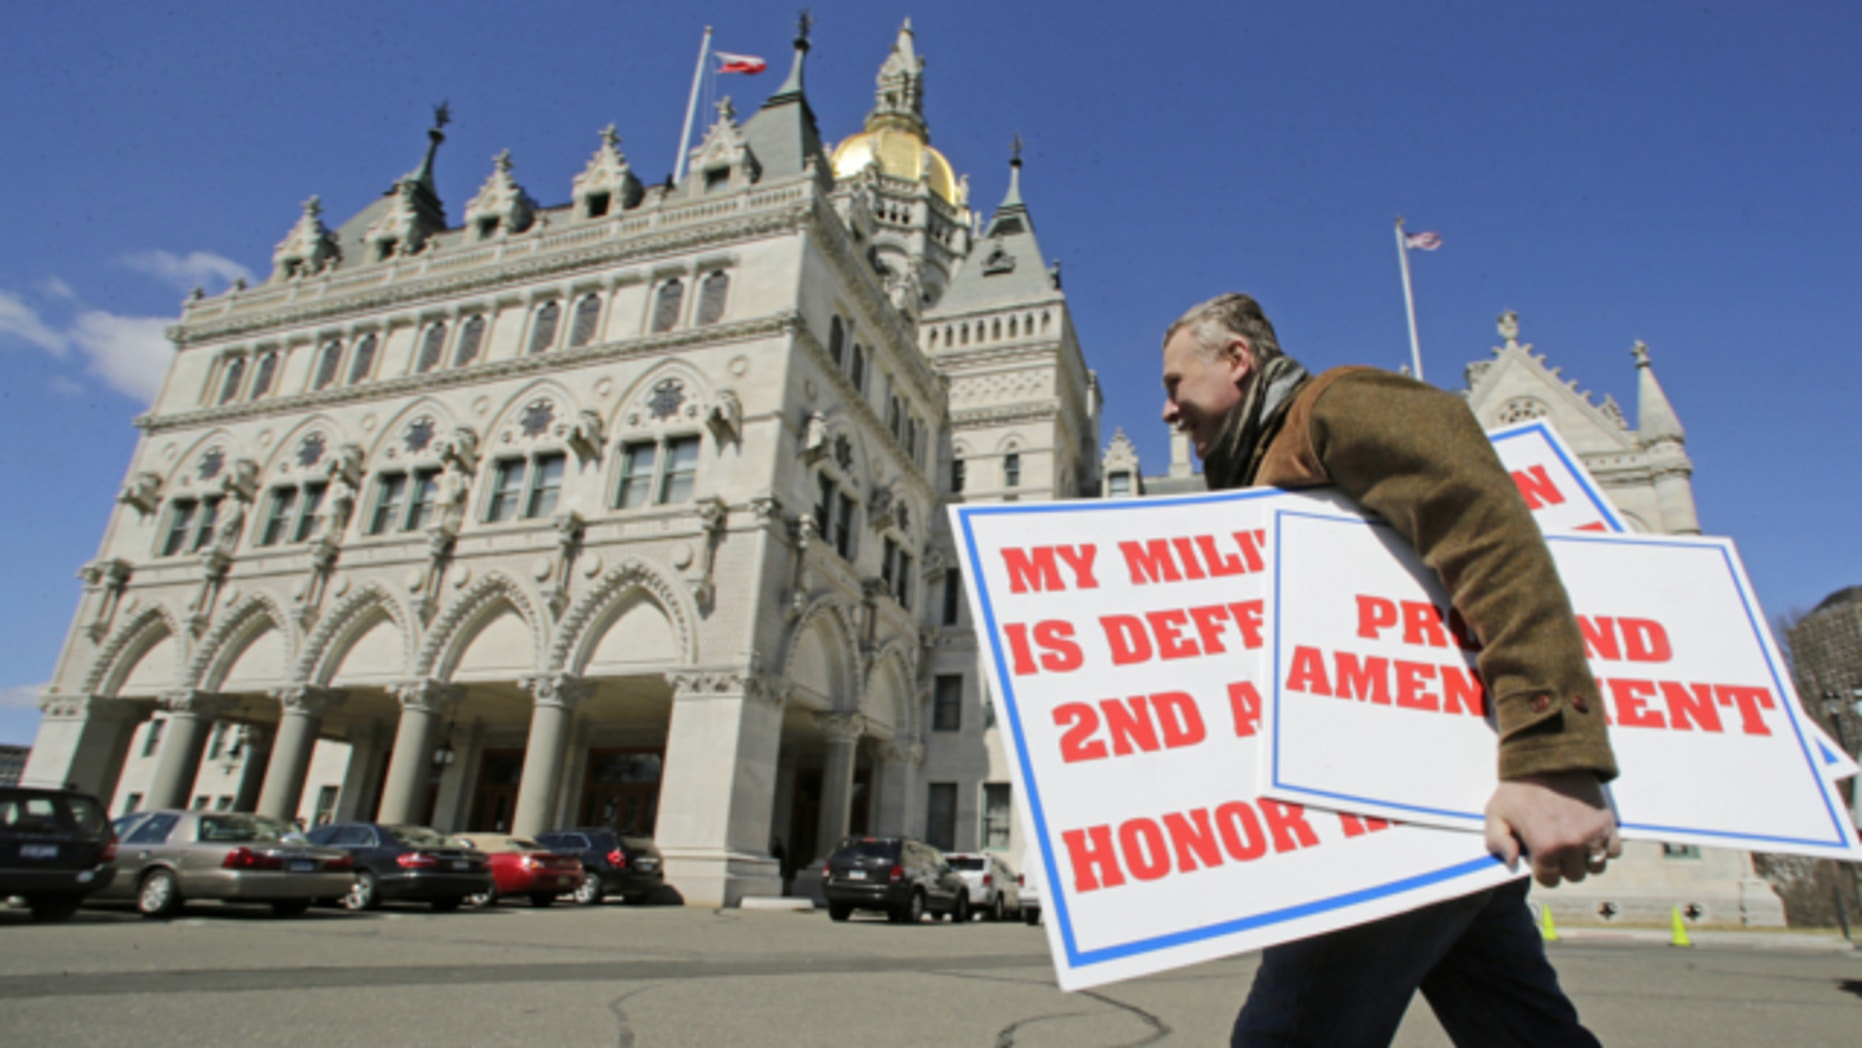 April 3, 2013: Jody Winslow, of Farmington, Conn., carries signs regarding the second amendment of the U.S. Constitution as he heads back to the Capitol in Hartford, Conn.